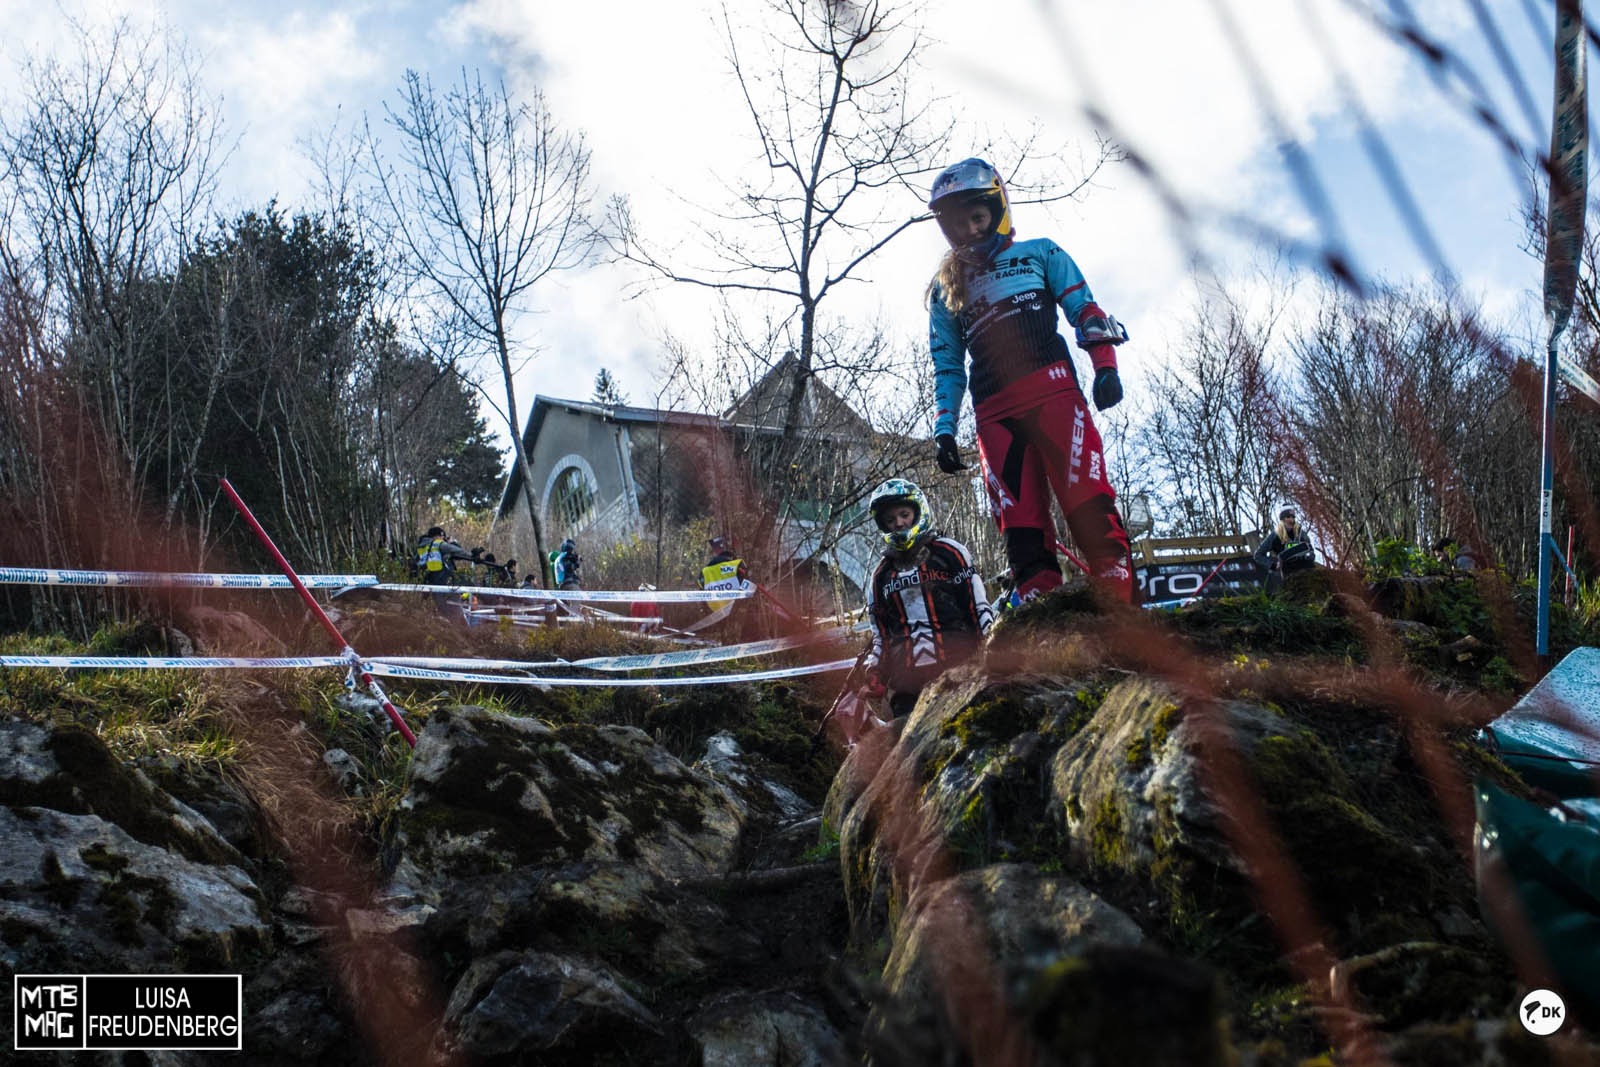 Rachel Atherton searching for a decent line...